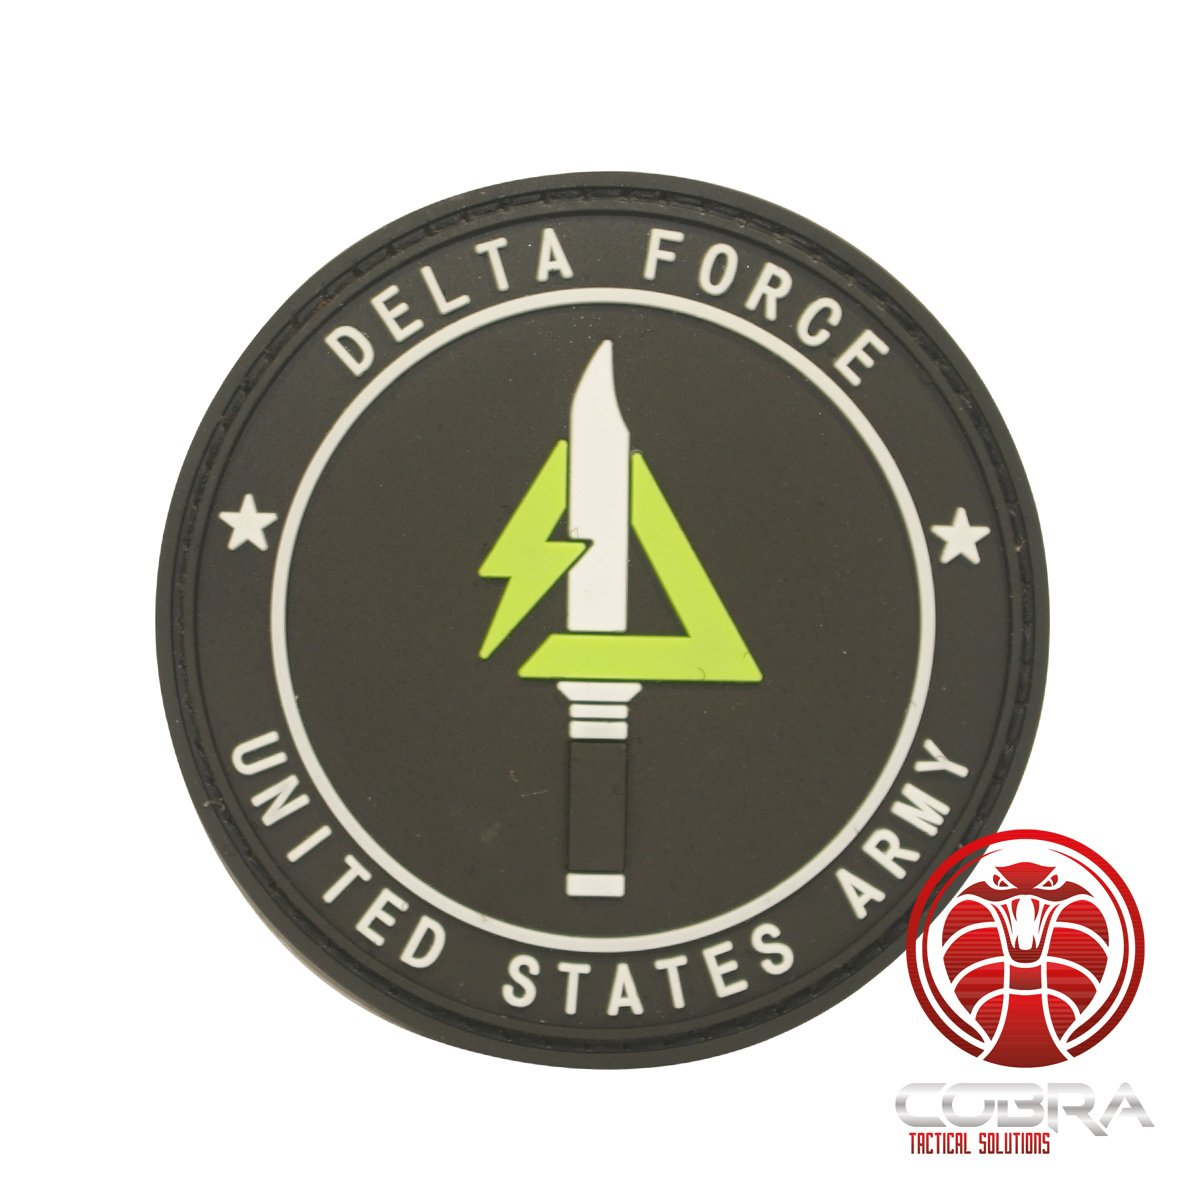 Cobra Tactical Solutions Delta Force | United States